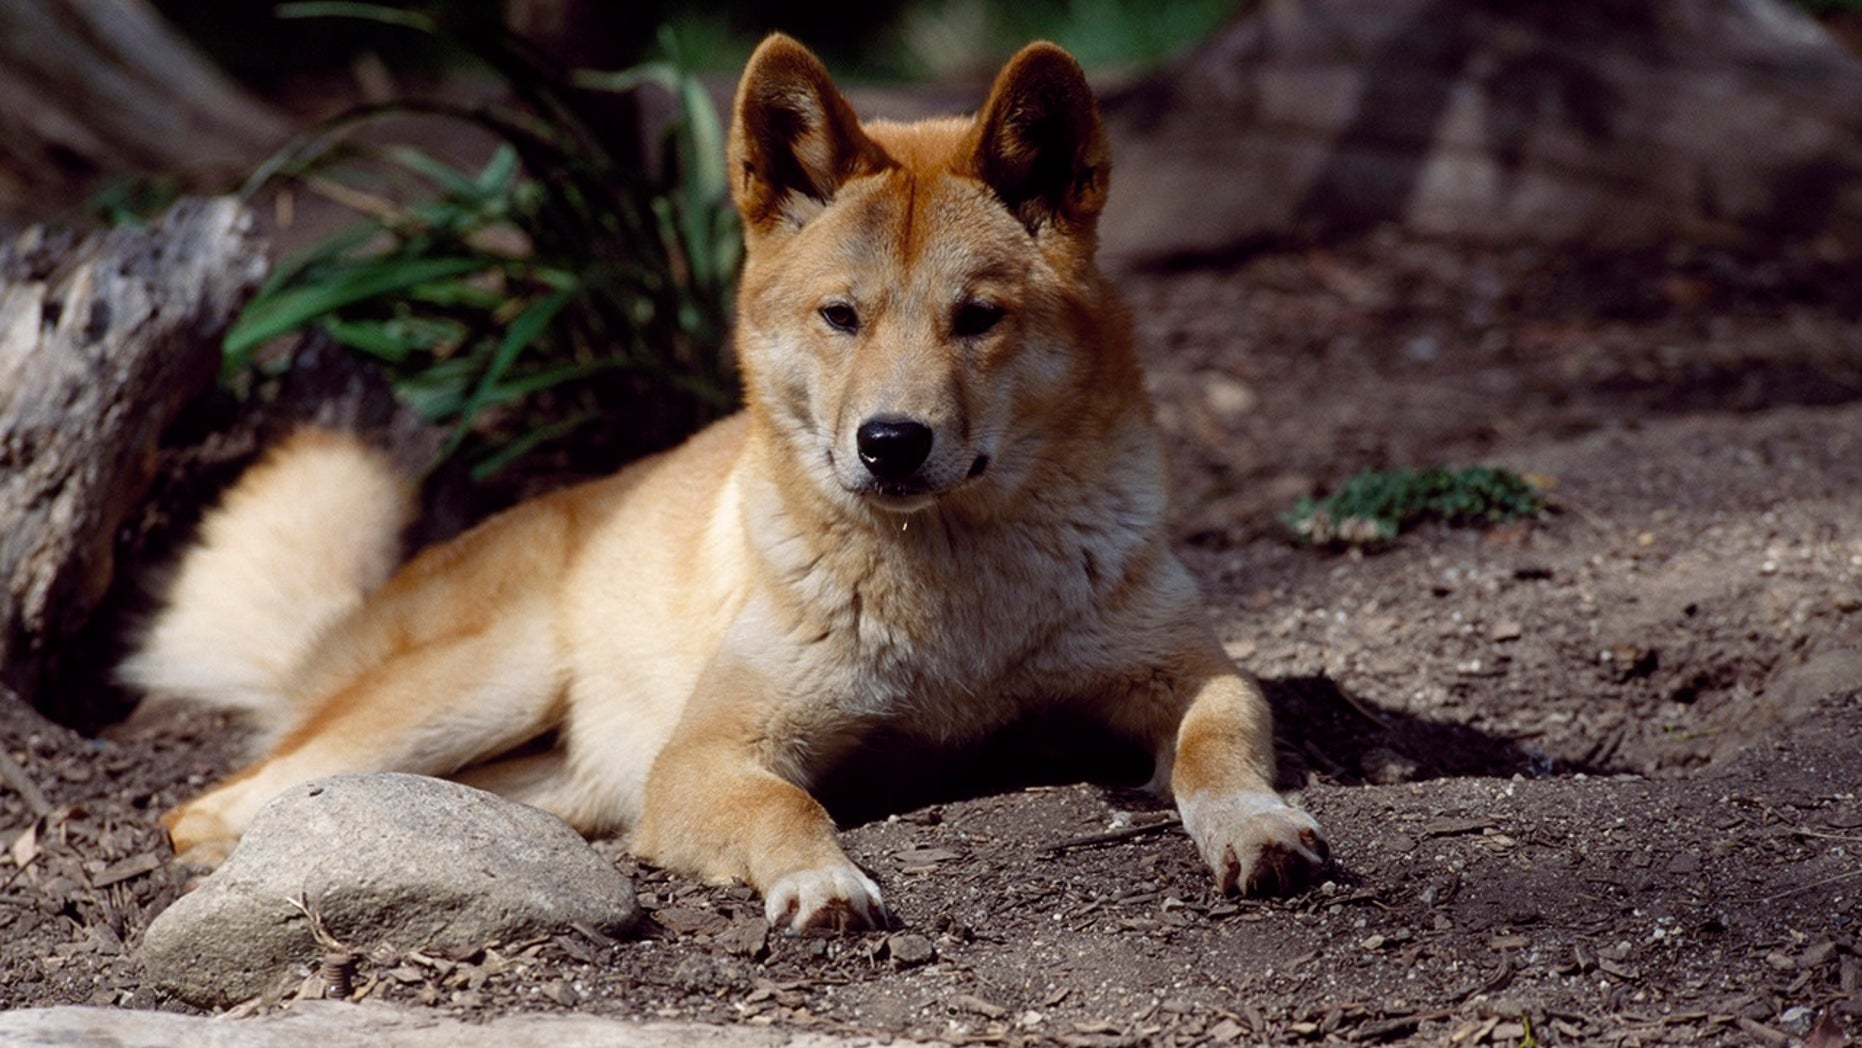 A man on a remote island off the coast of Australia rescued his infant son from the jaws of a dingo. (Photo by DeAgostini/Getty Images)